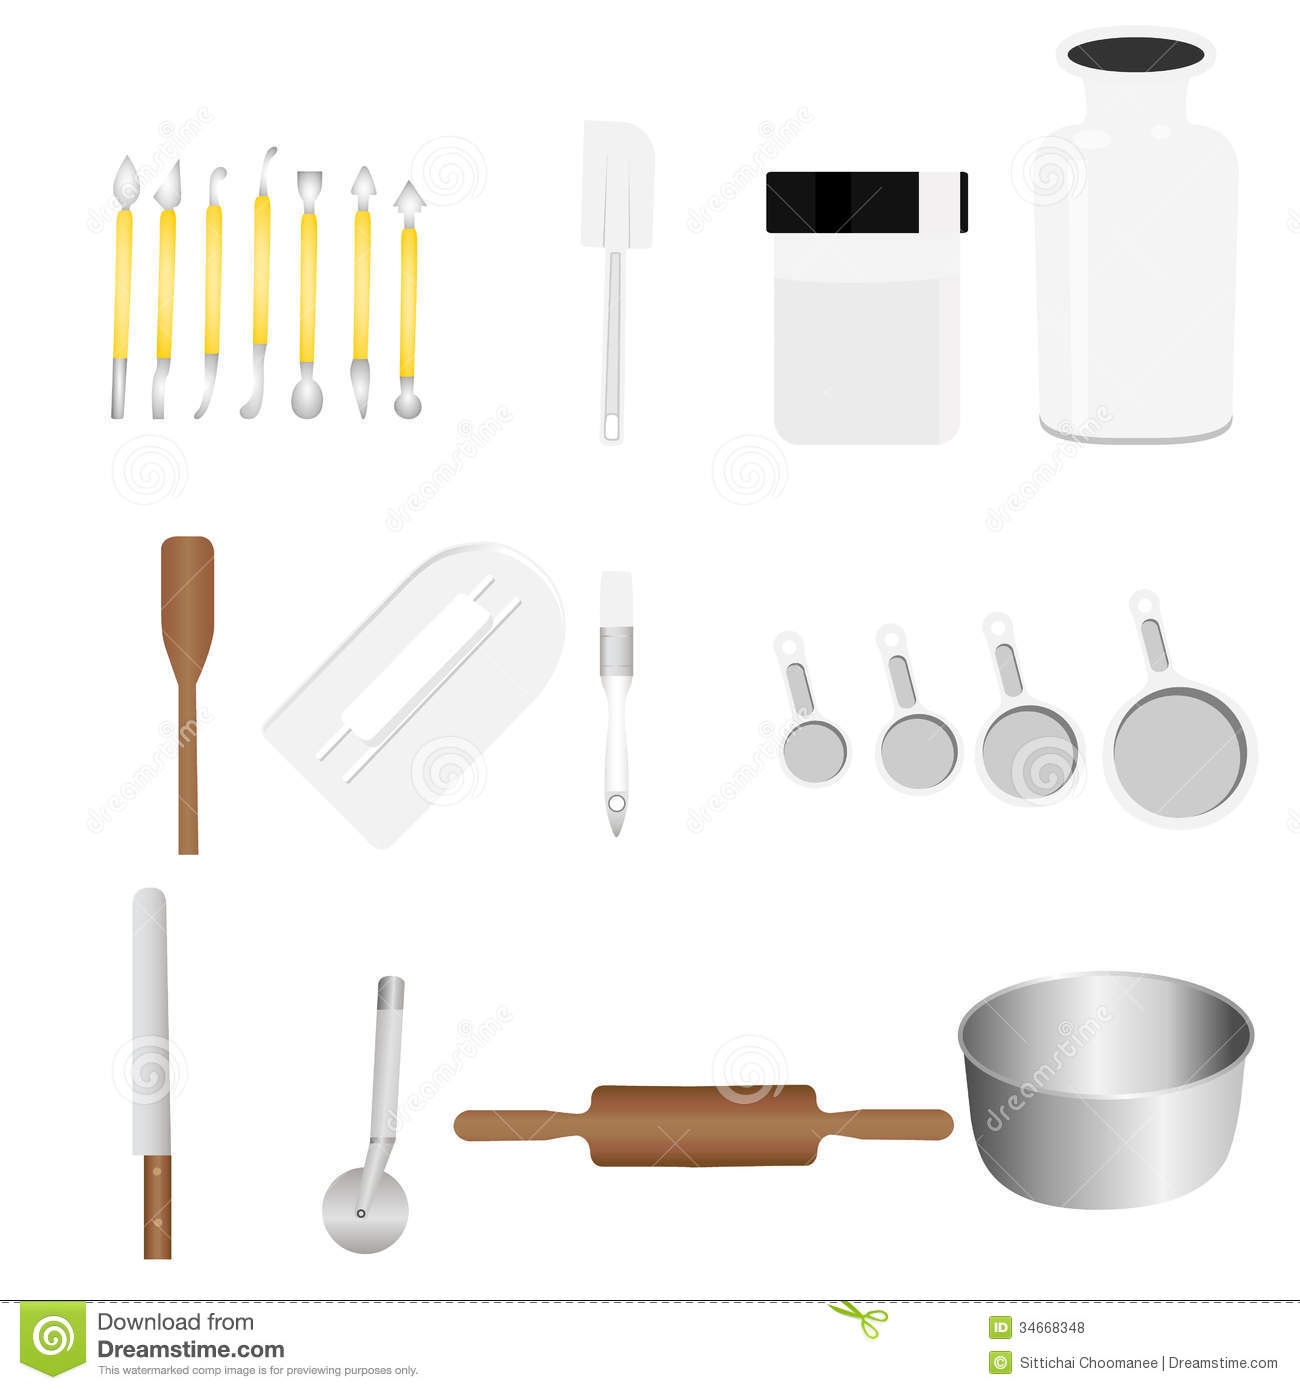 Kitchen tools royalty free stock photos image 34668348 for Colorful kitchen tools